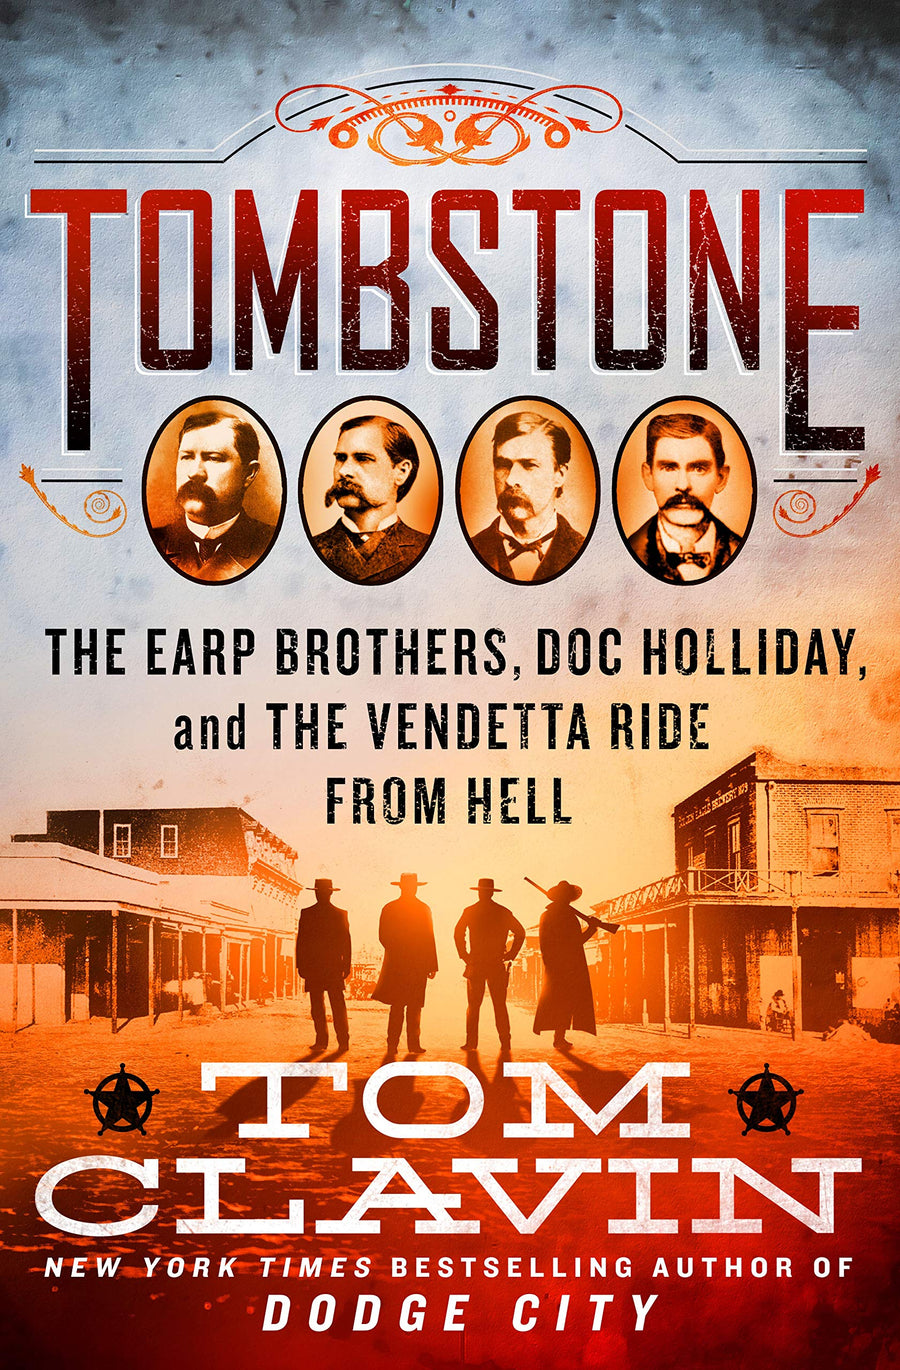 Tombstone: The Earp Brothers, Doc Holliday, and the Vendetta Ride from Hell - Leadership Books